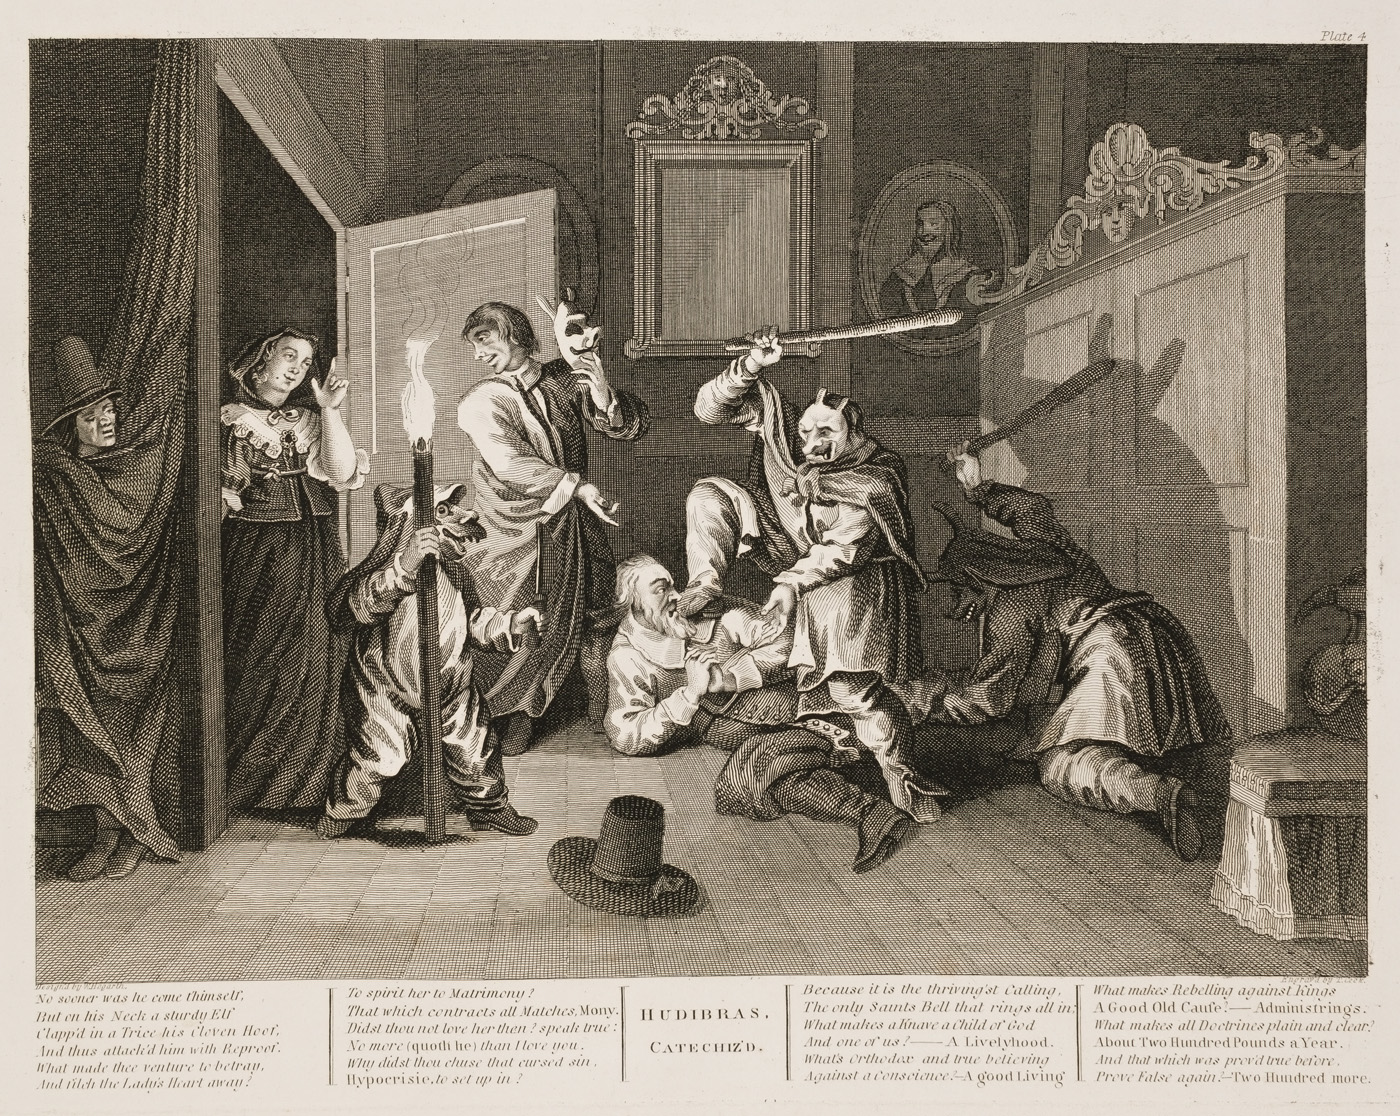 William Hogarth - Hudibras plate 4